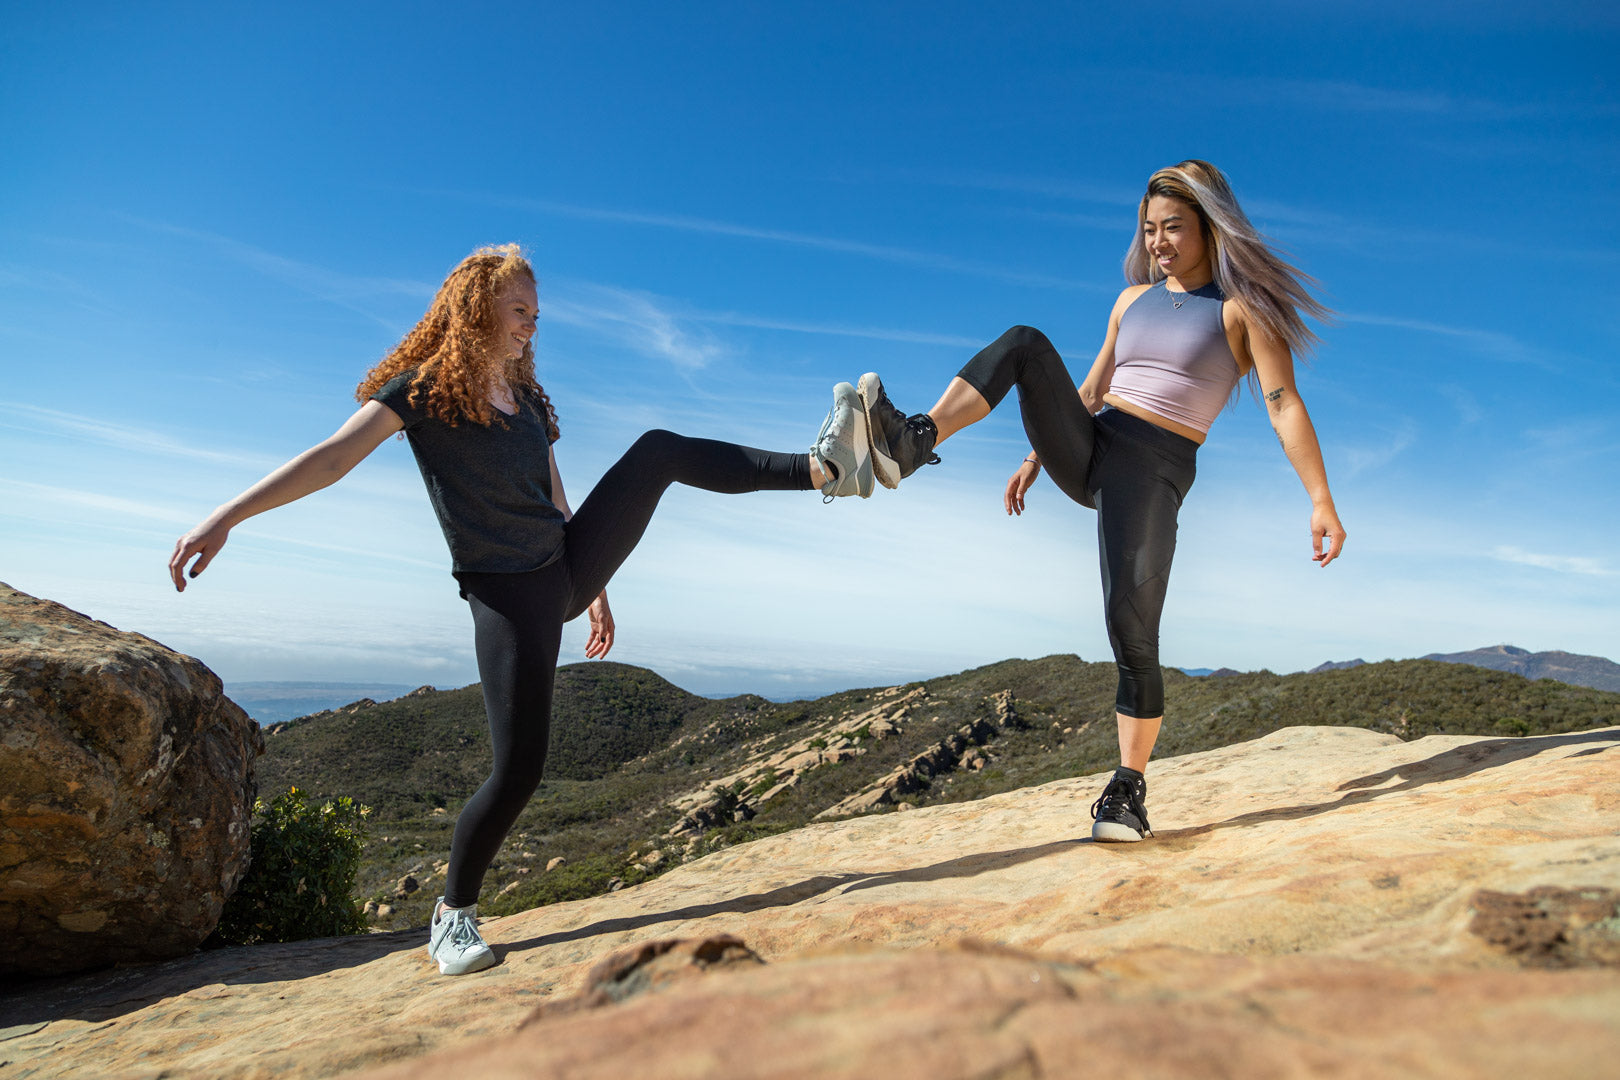 Two women tapping feet at the top of a mountain